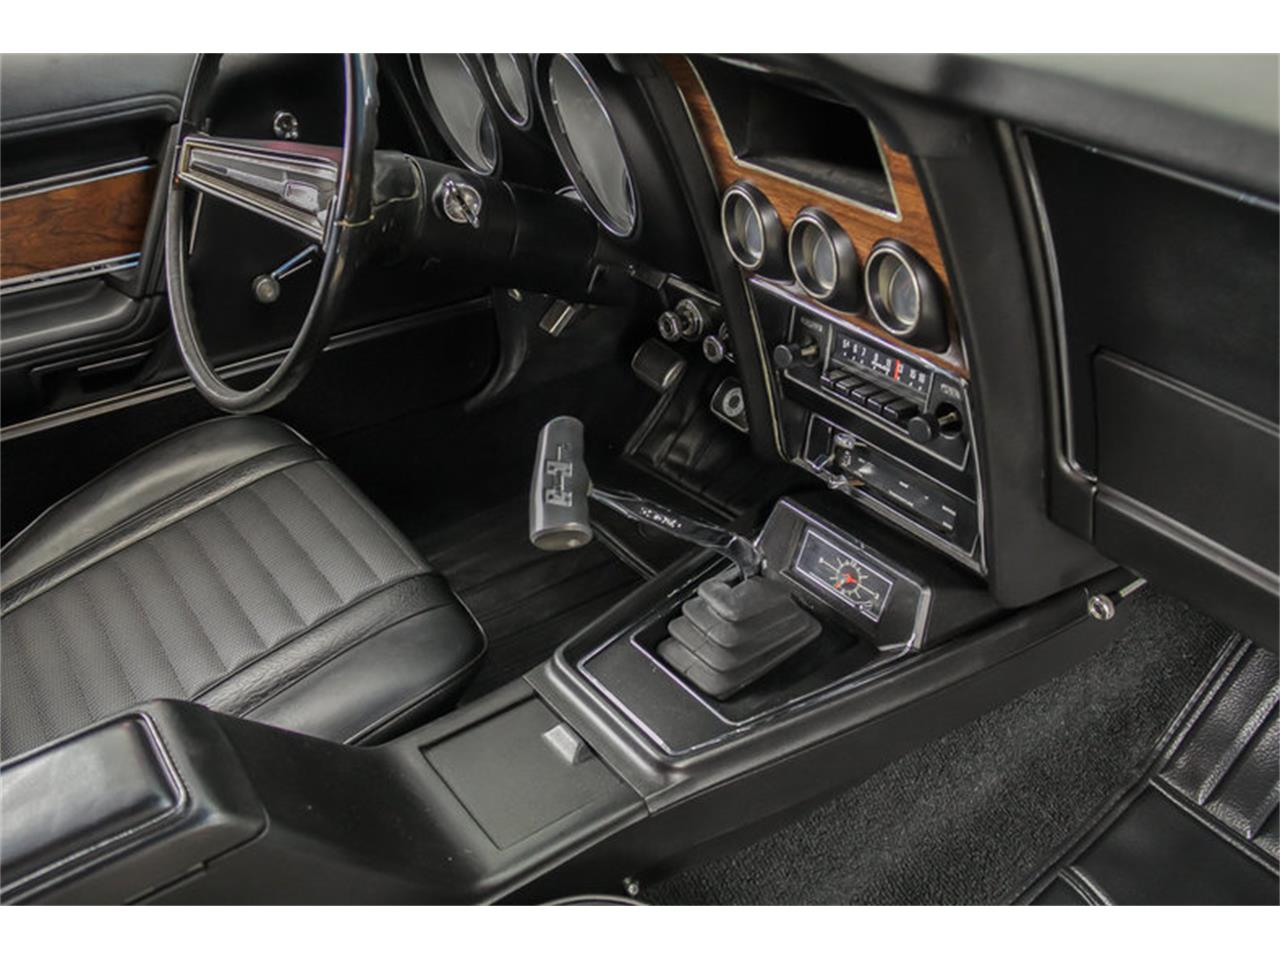 Large Picture of Classic 1973 Mustang Mach 1 Q Code located in Michigan - $34,900.00 Offered by Vanguard Motor Sales - JDX1